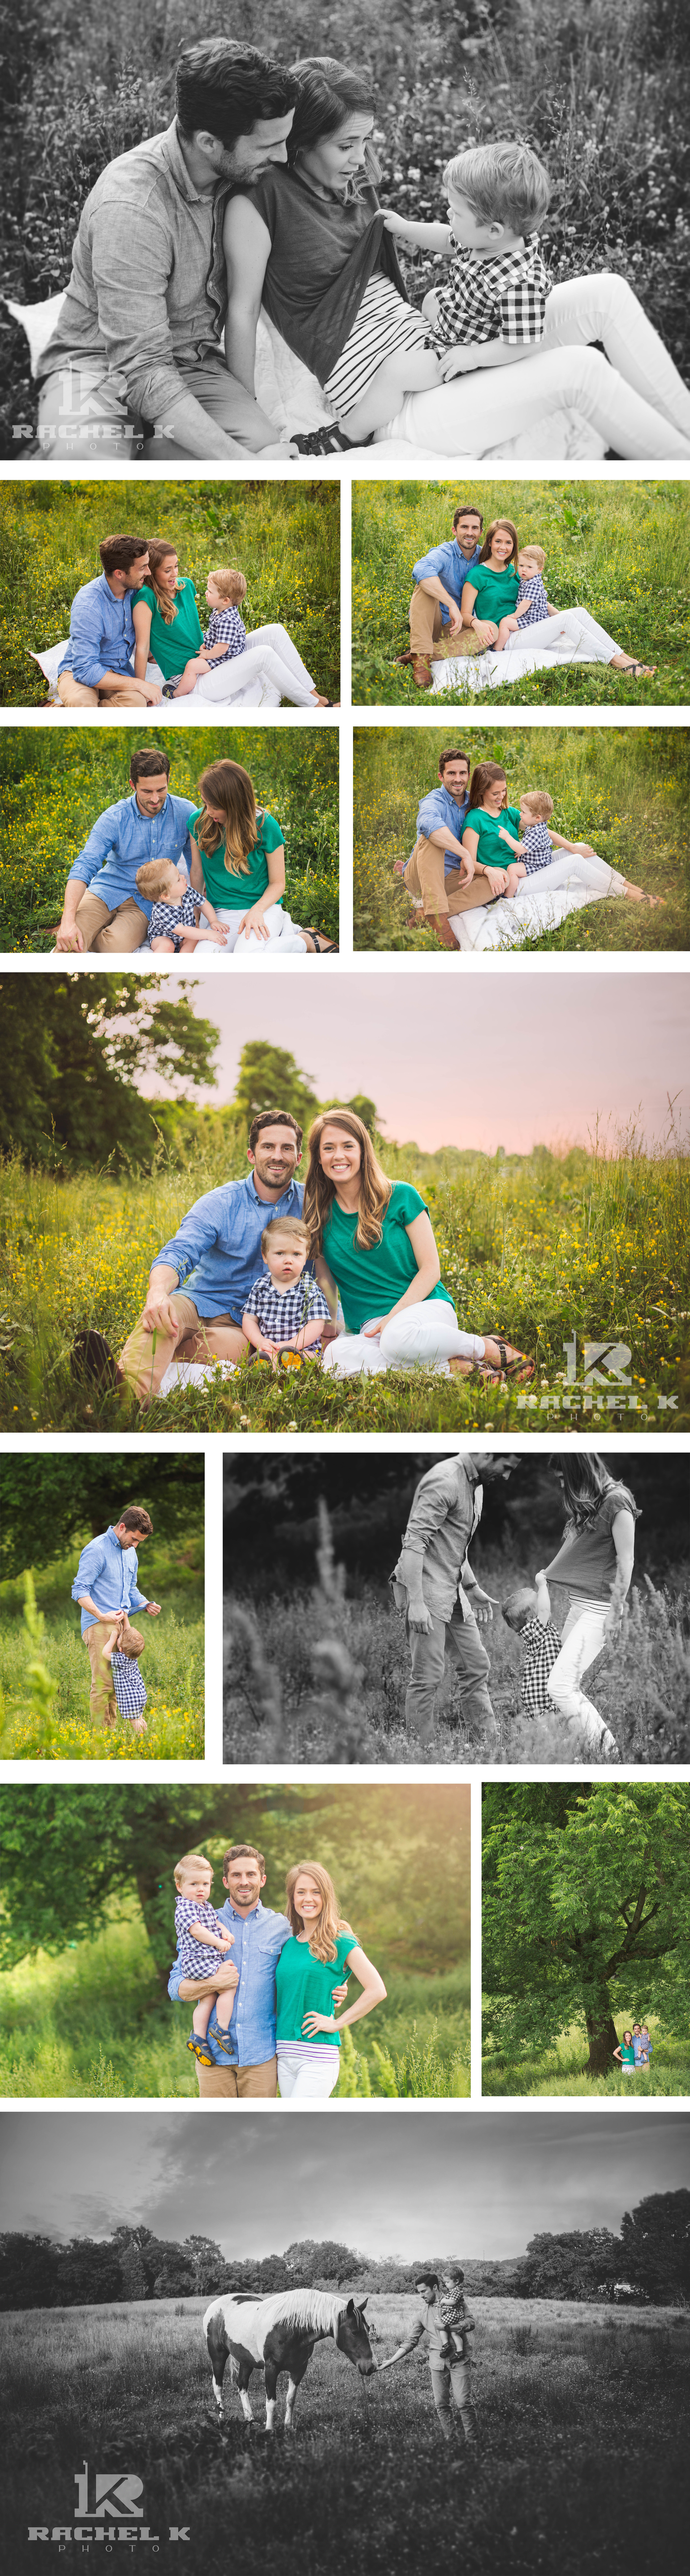 Bailey-family-knoxville-family-photographer